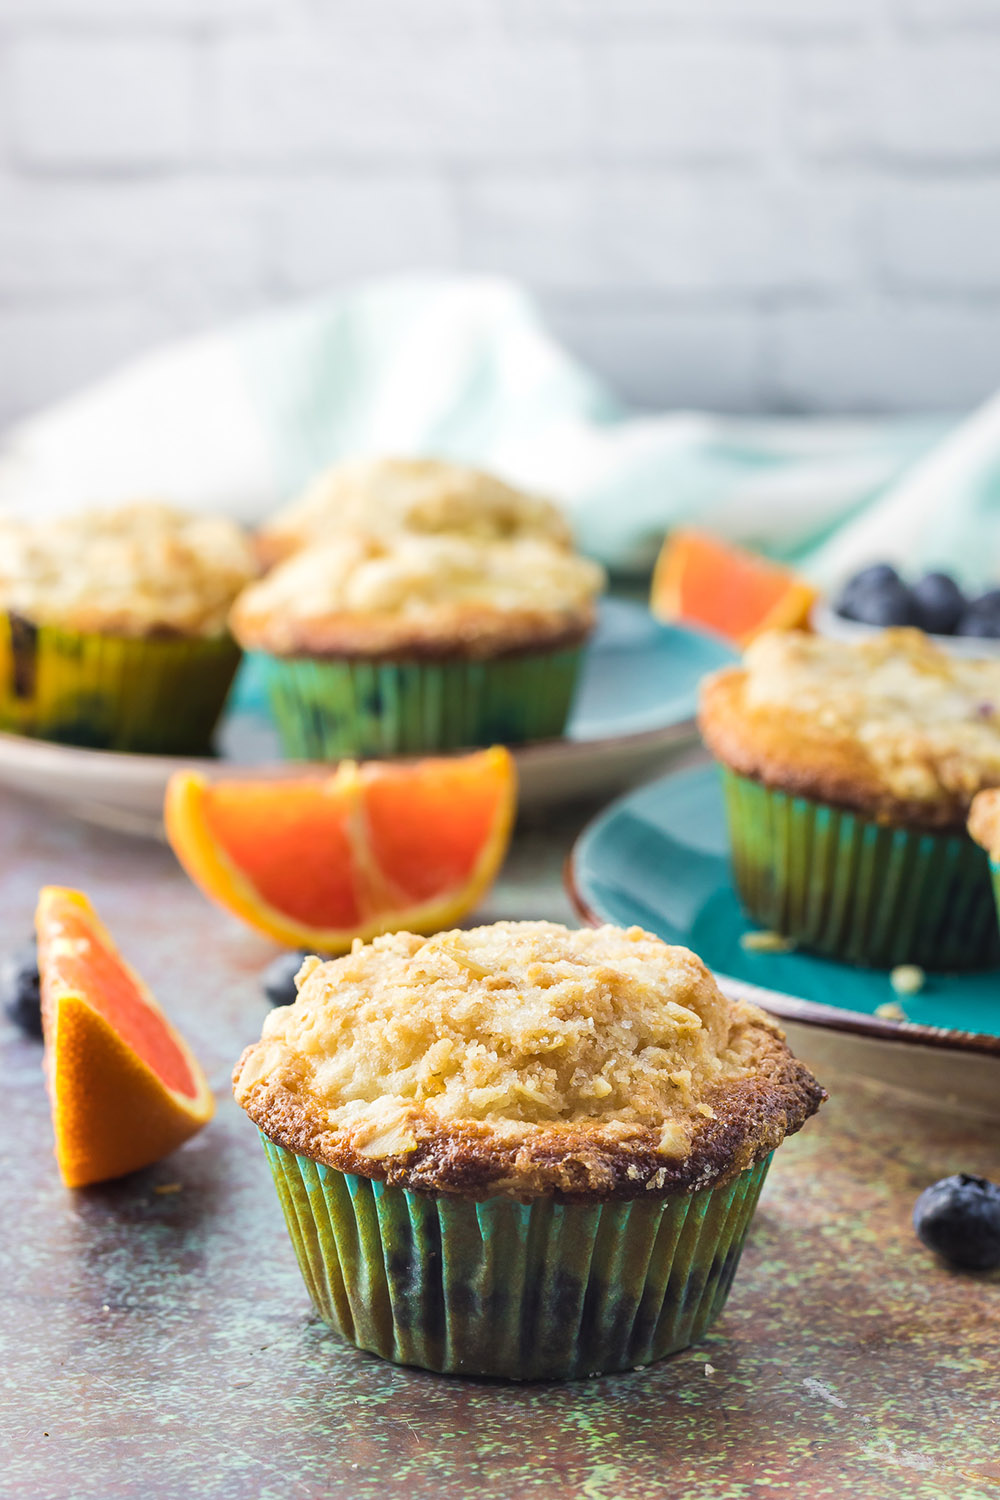 Blueberry muffins on a table with orange slices.